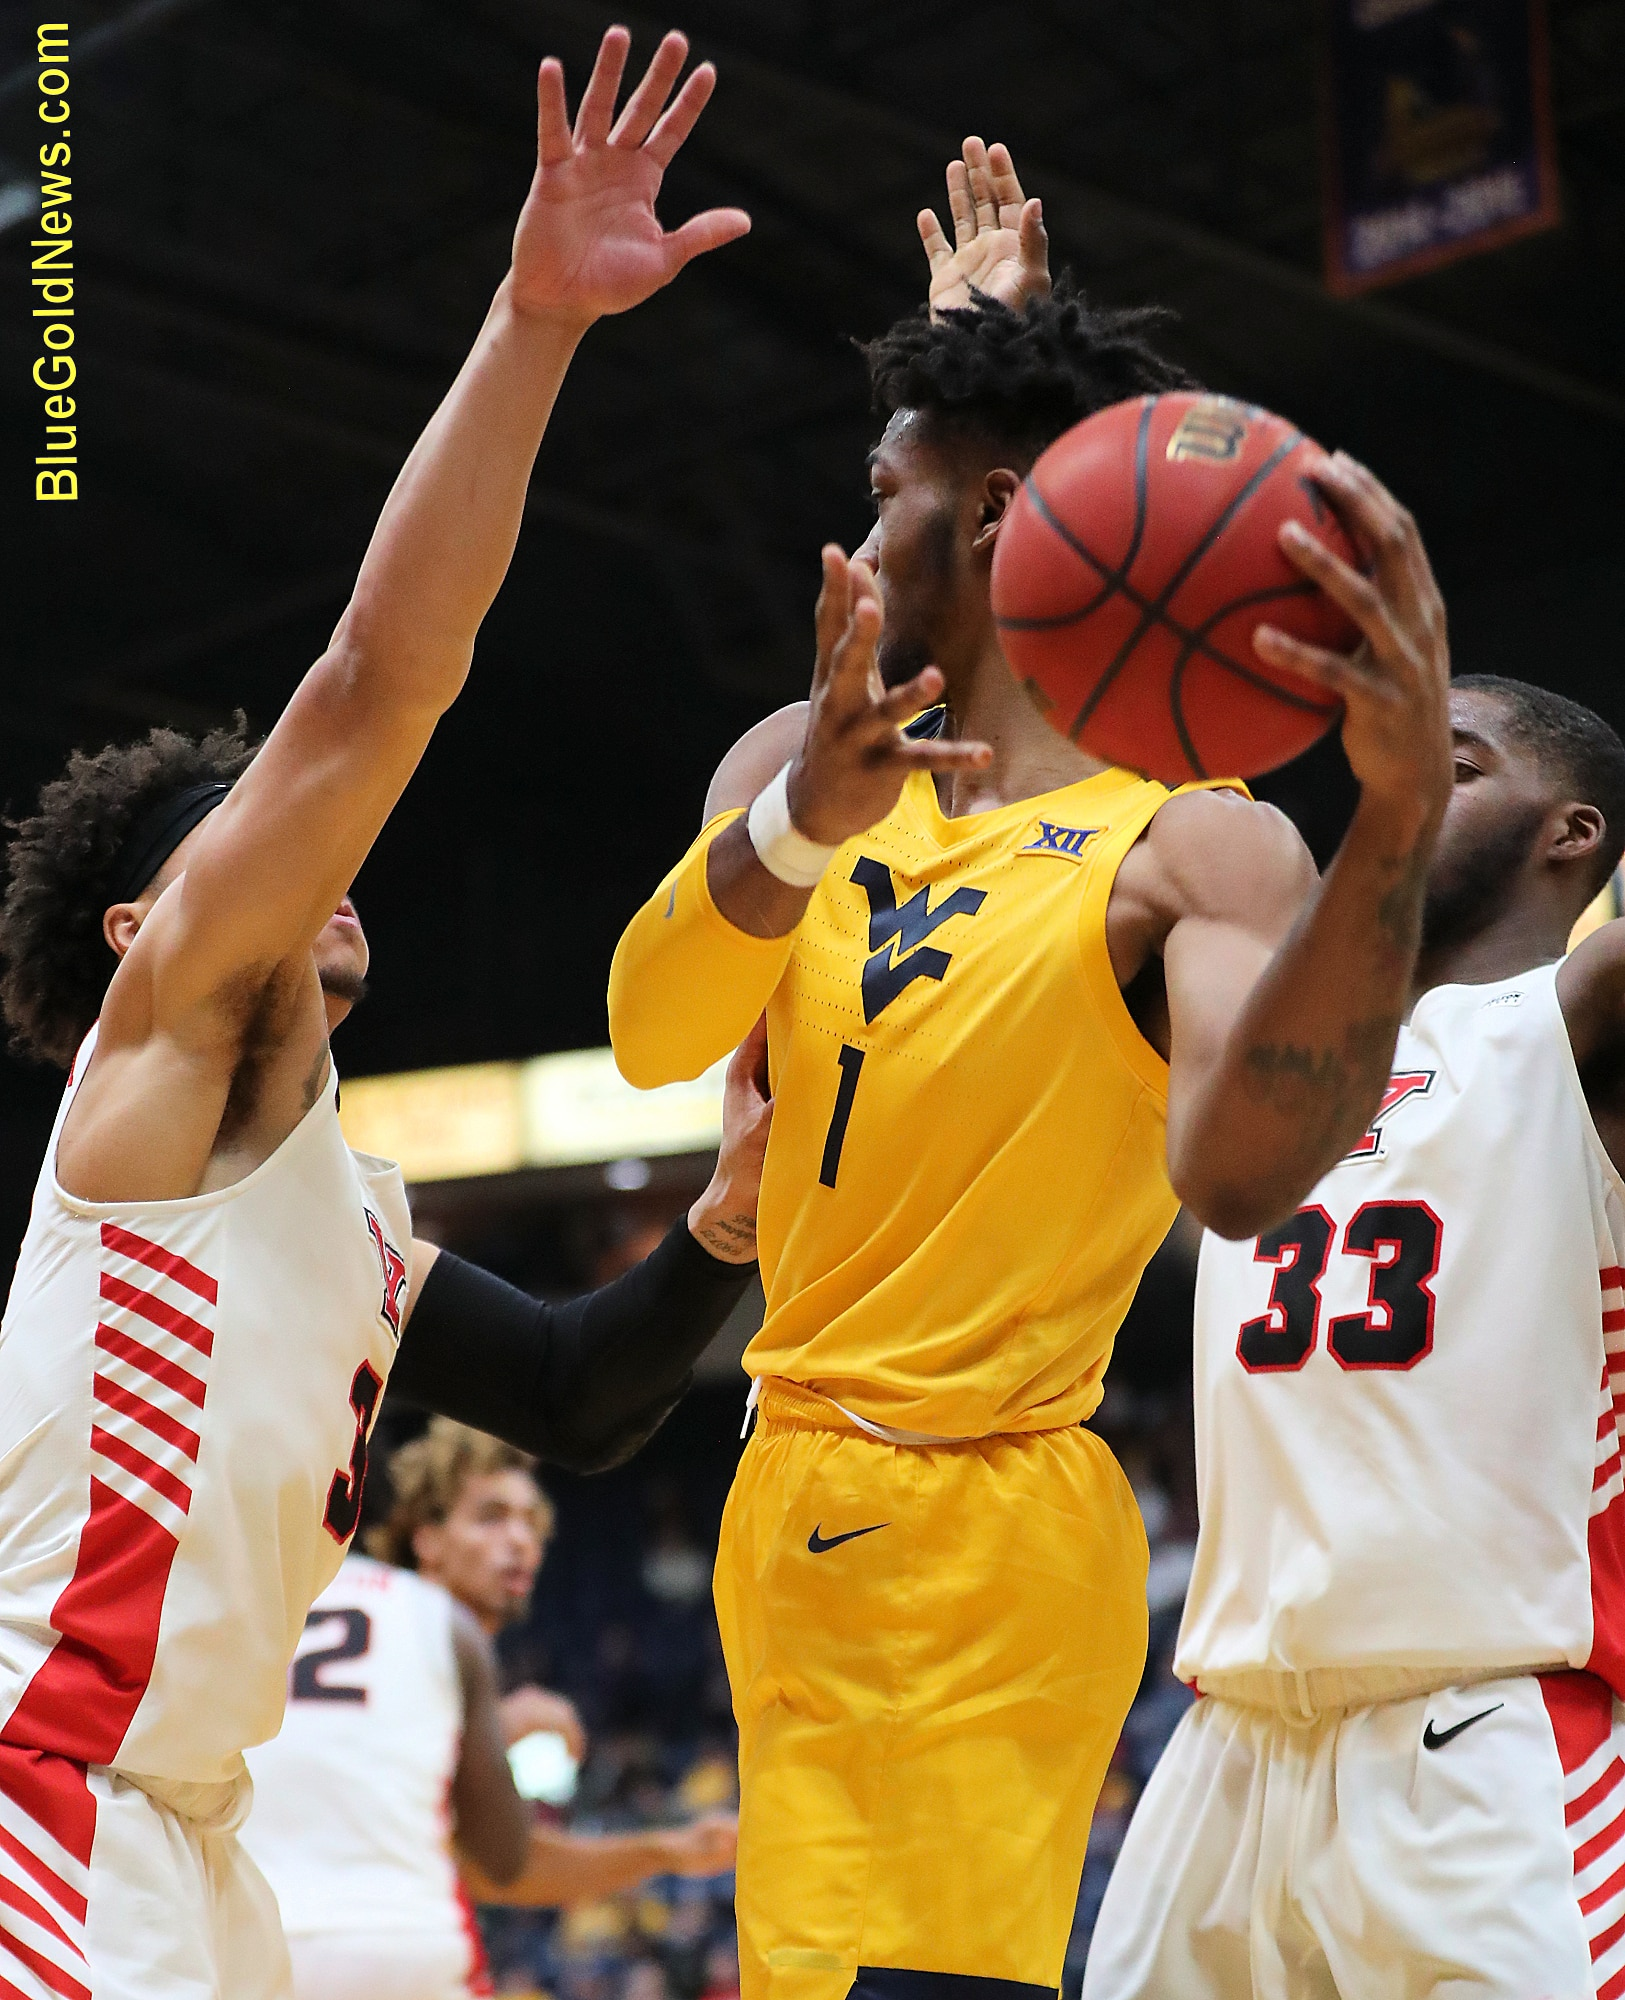 West Virginia forward Derek Culver (1) passes out of a Youngstown State doubleteam consisting of Darius Quisenberry (3) and Naz Bohannon (33)